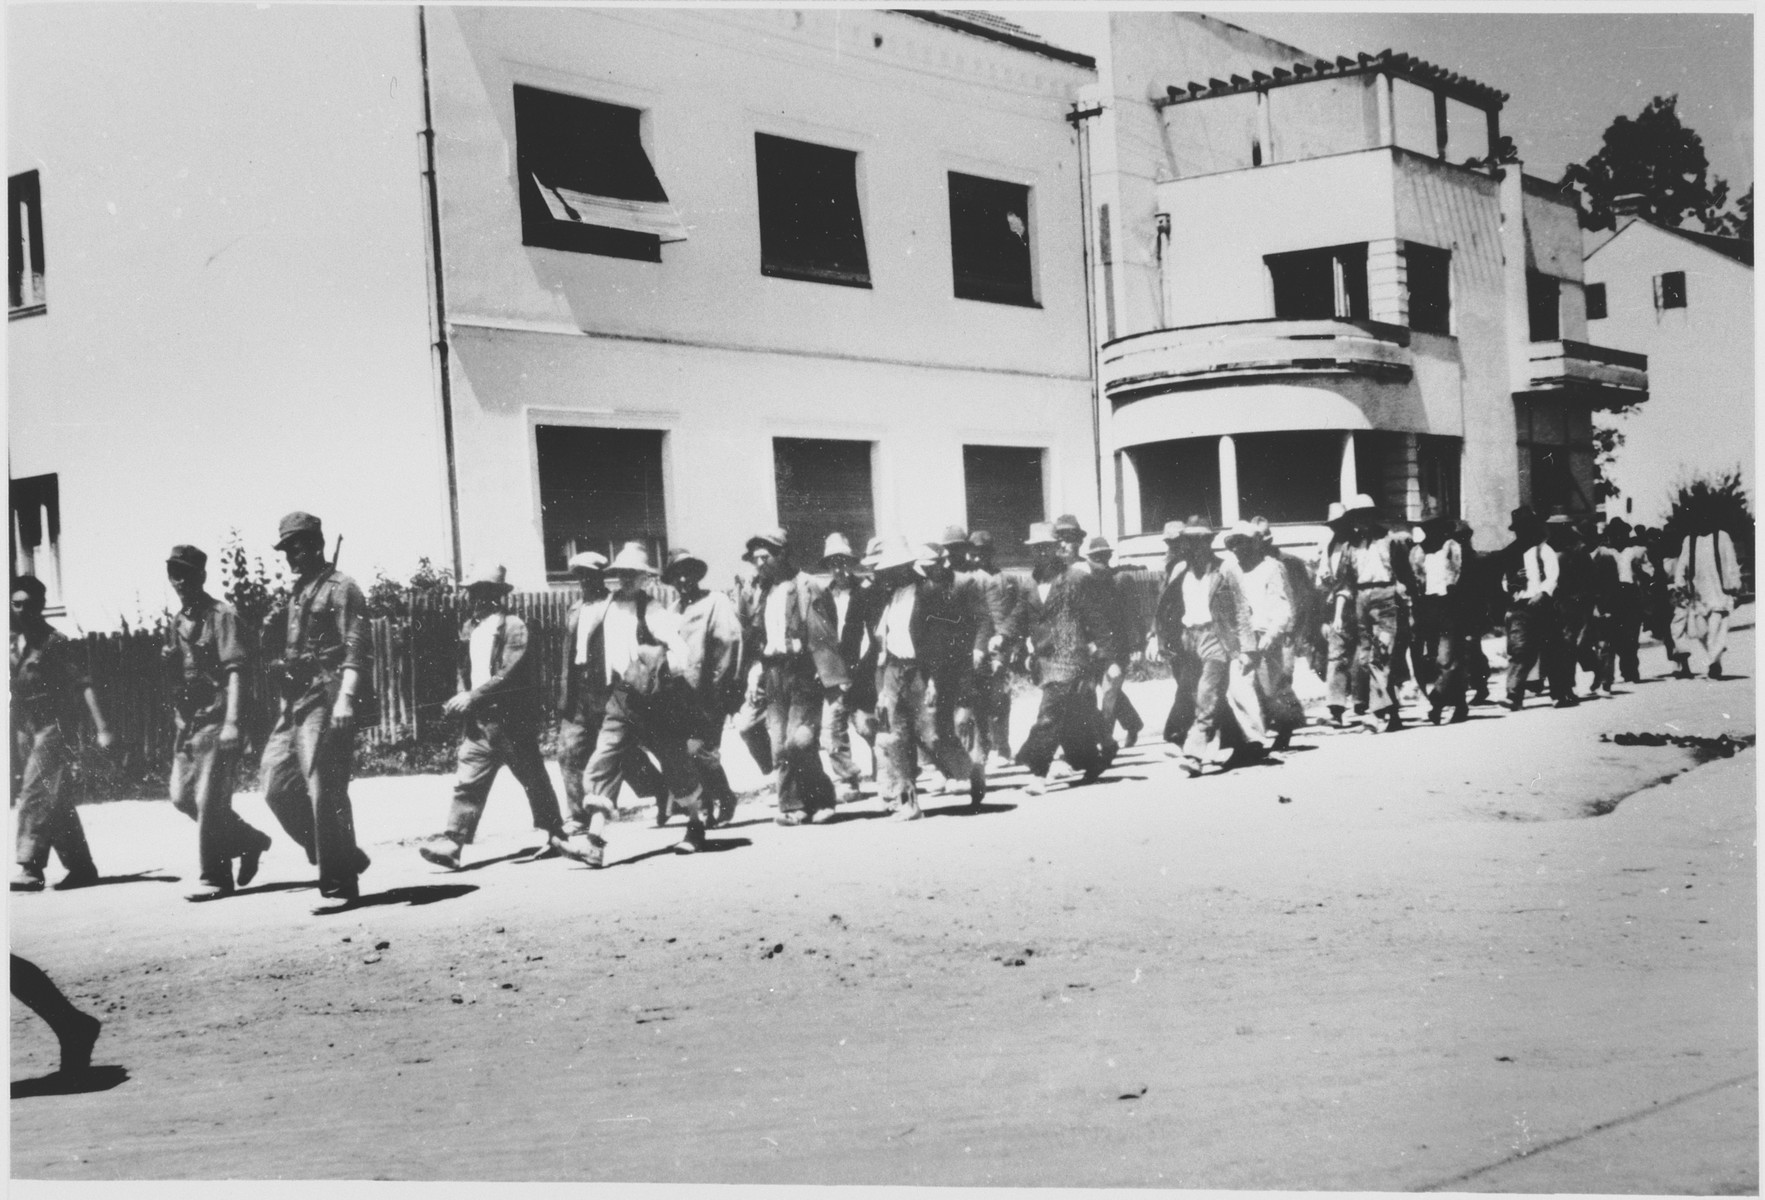 A group of men who have been rounded-up for deportation, are marched out of town [probably by members of the Ustasa militia].